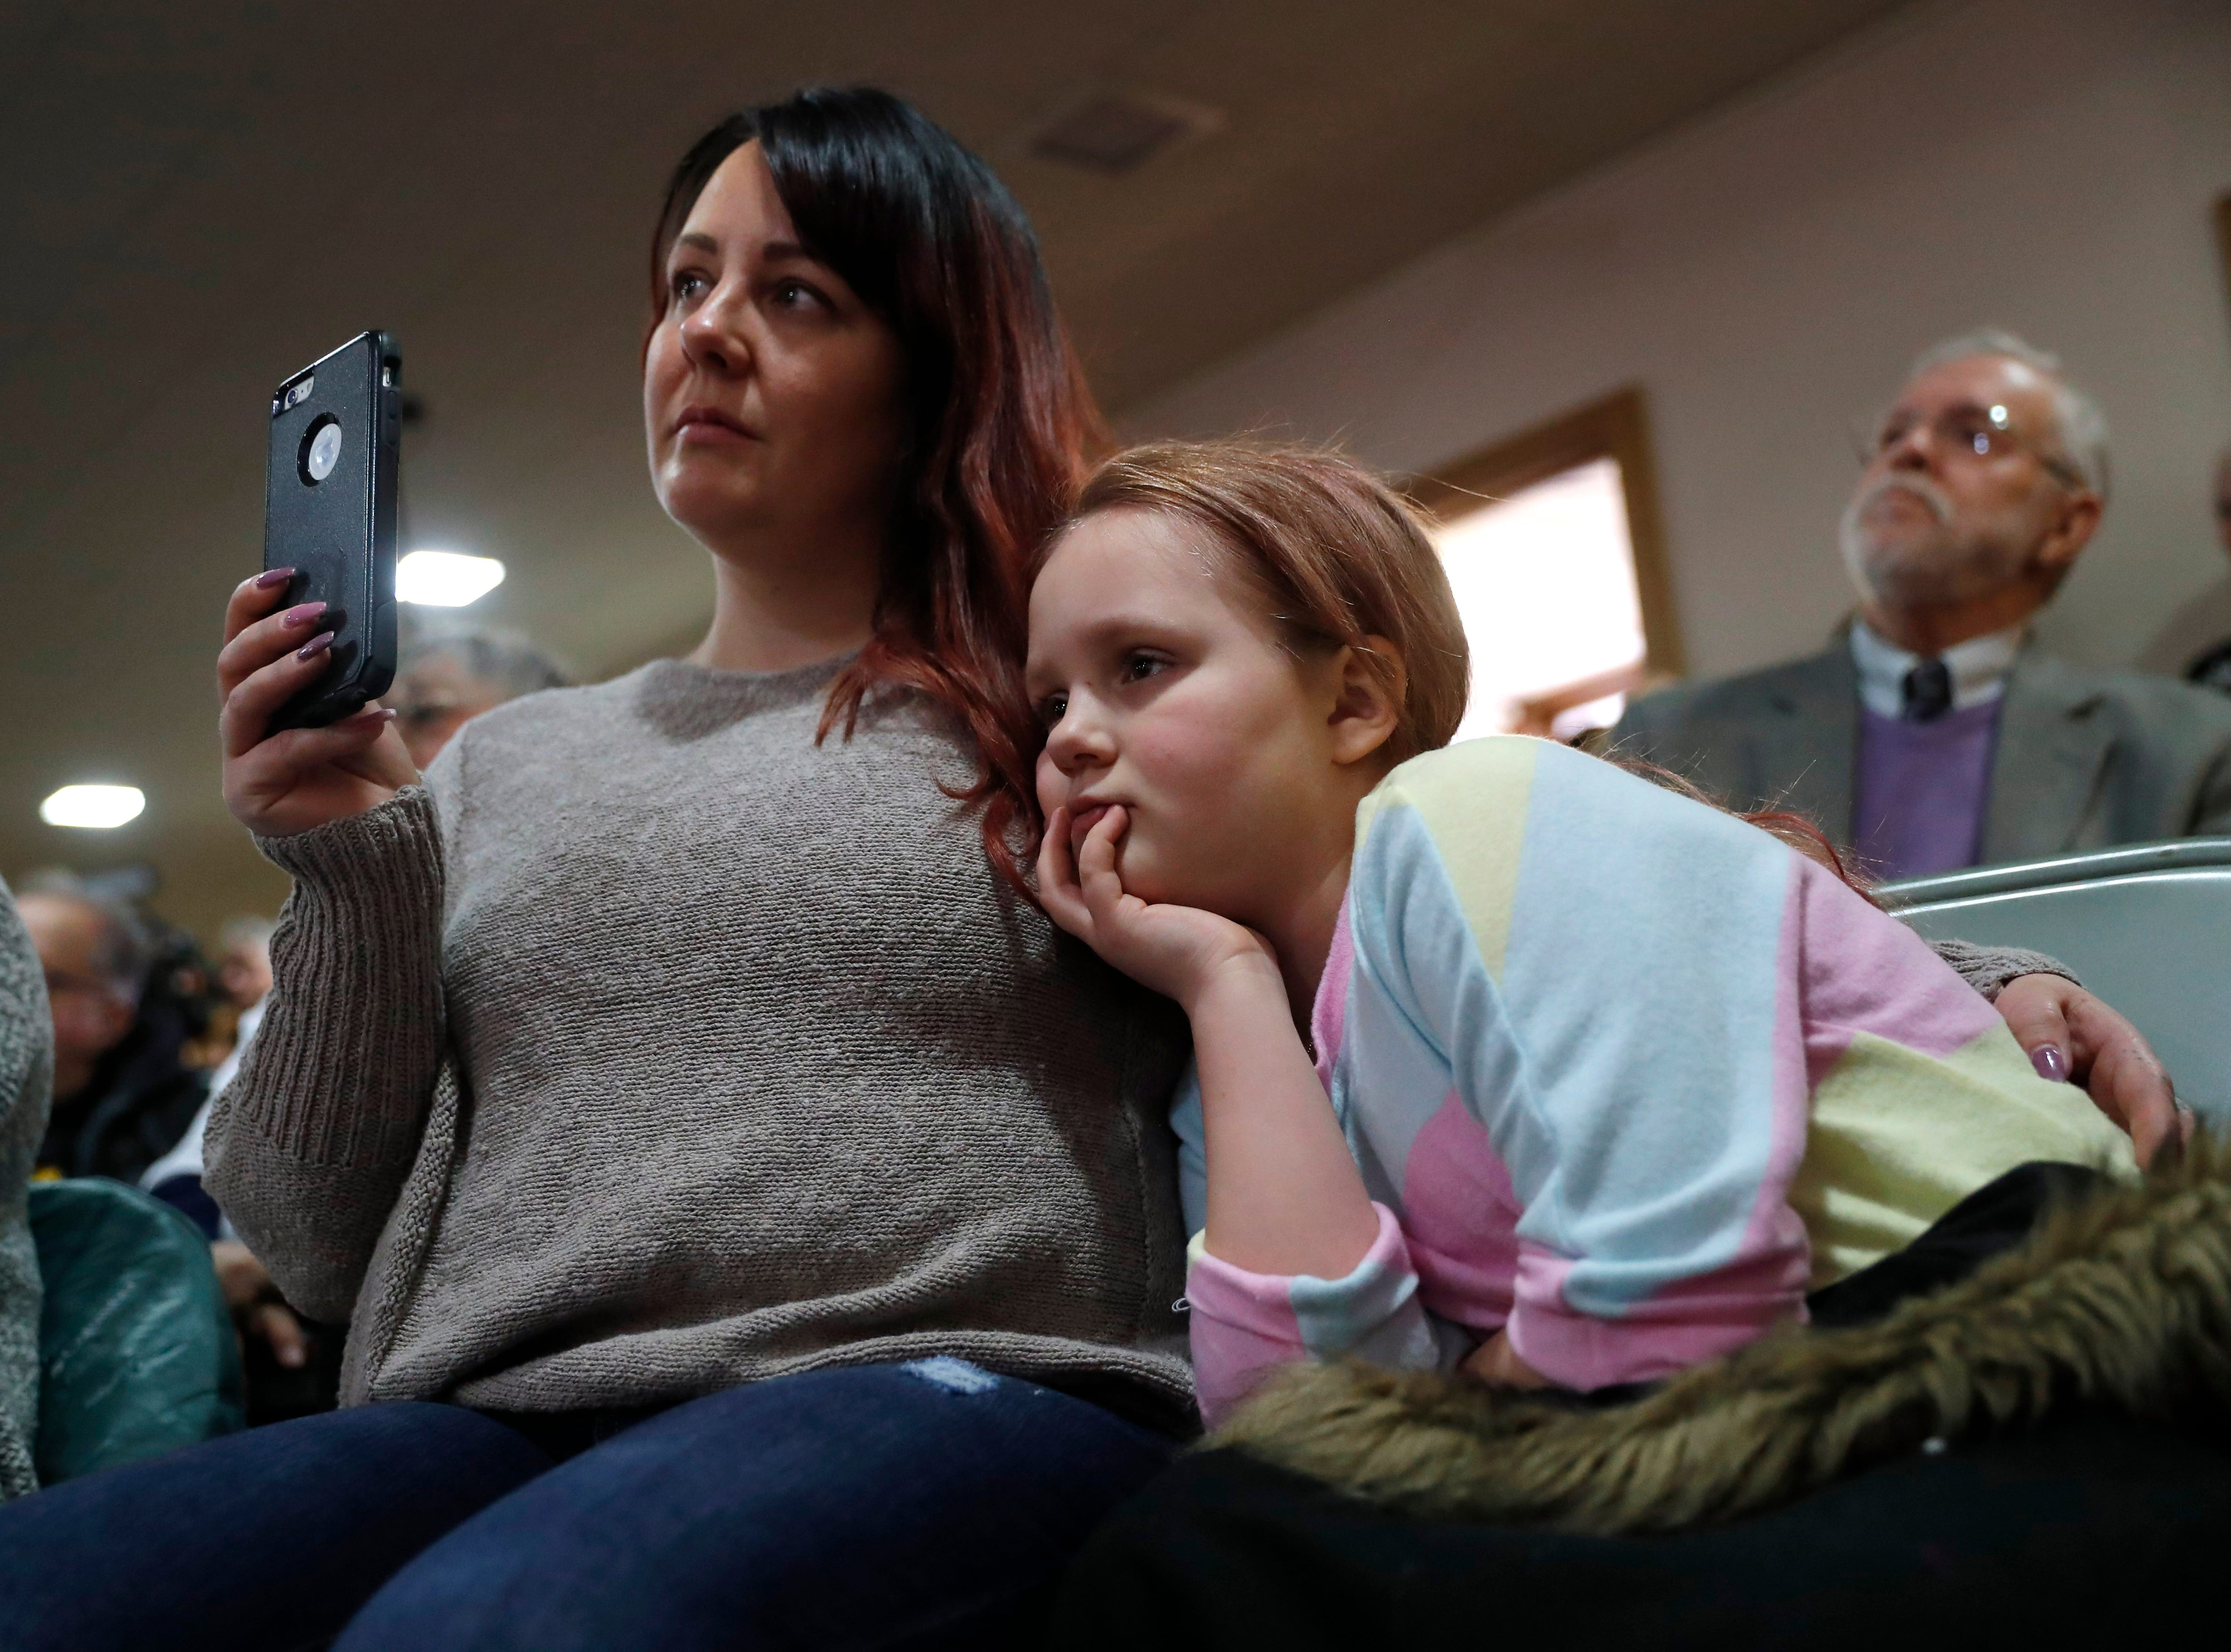 Alyssa Benson, of Mason City, Iowa, and her daughter Jersey, right, listen to U.S. Sen. Cory Booker, D-N.J., speaks during a meet and greet at the First Congregational United Church of Christ, Friday, Feb. 8, 2019, in Mason City, Iowa. (AP Photo/Charlie Neibergall)